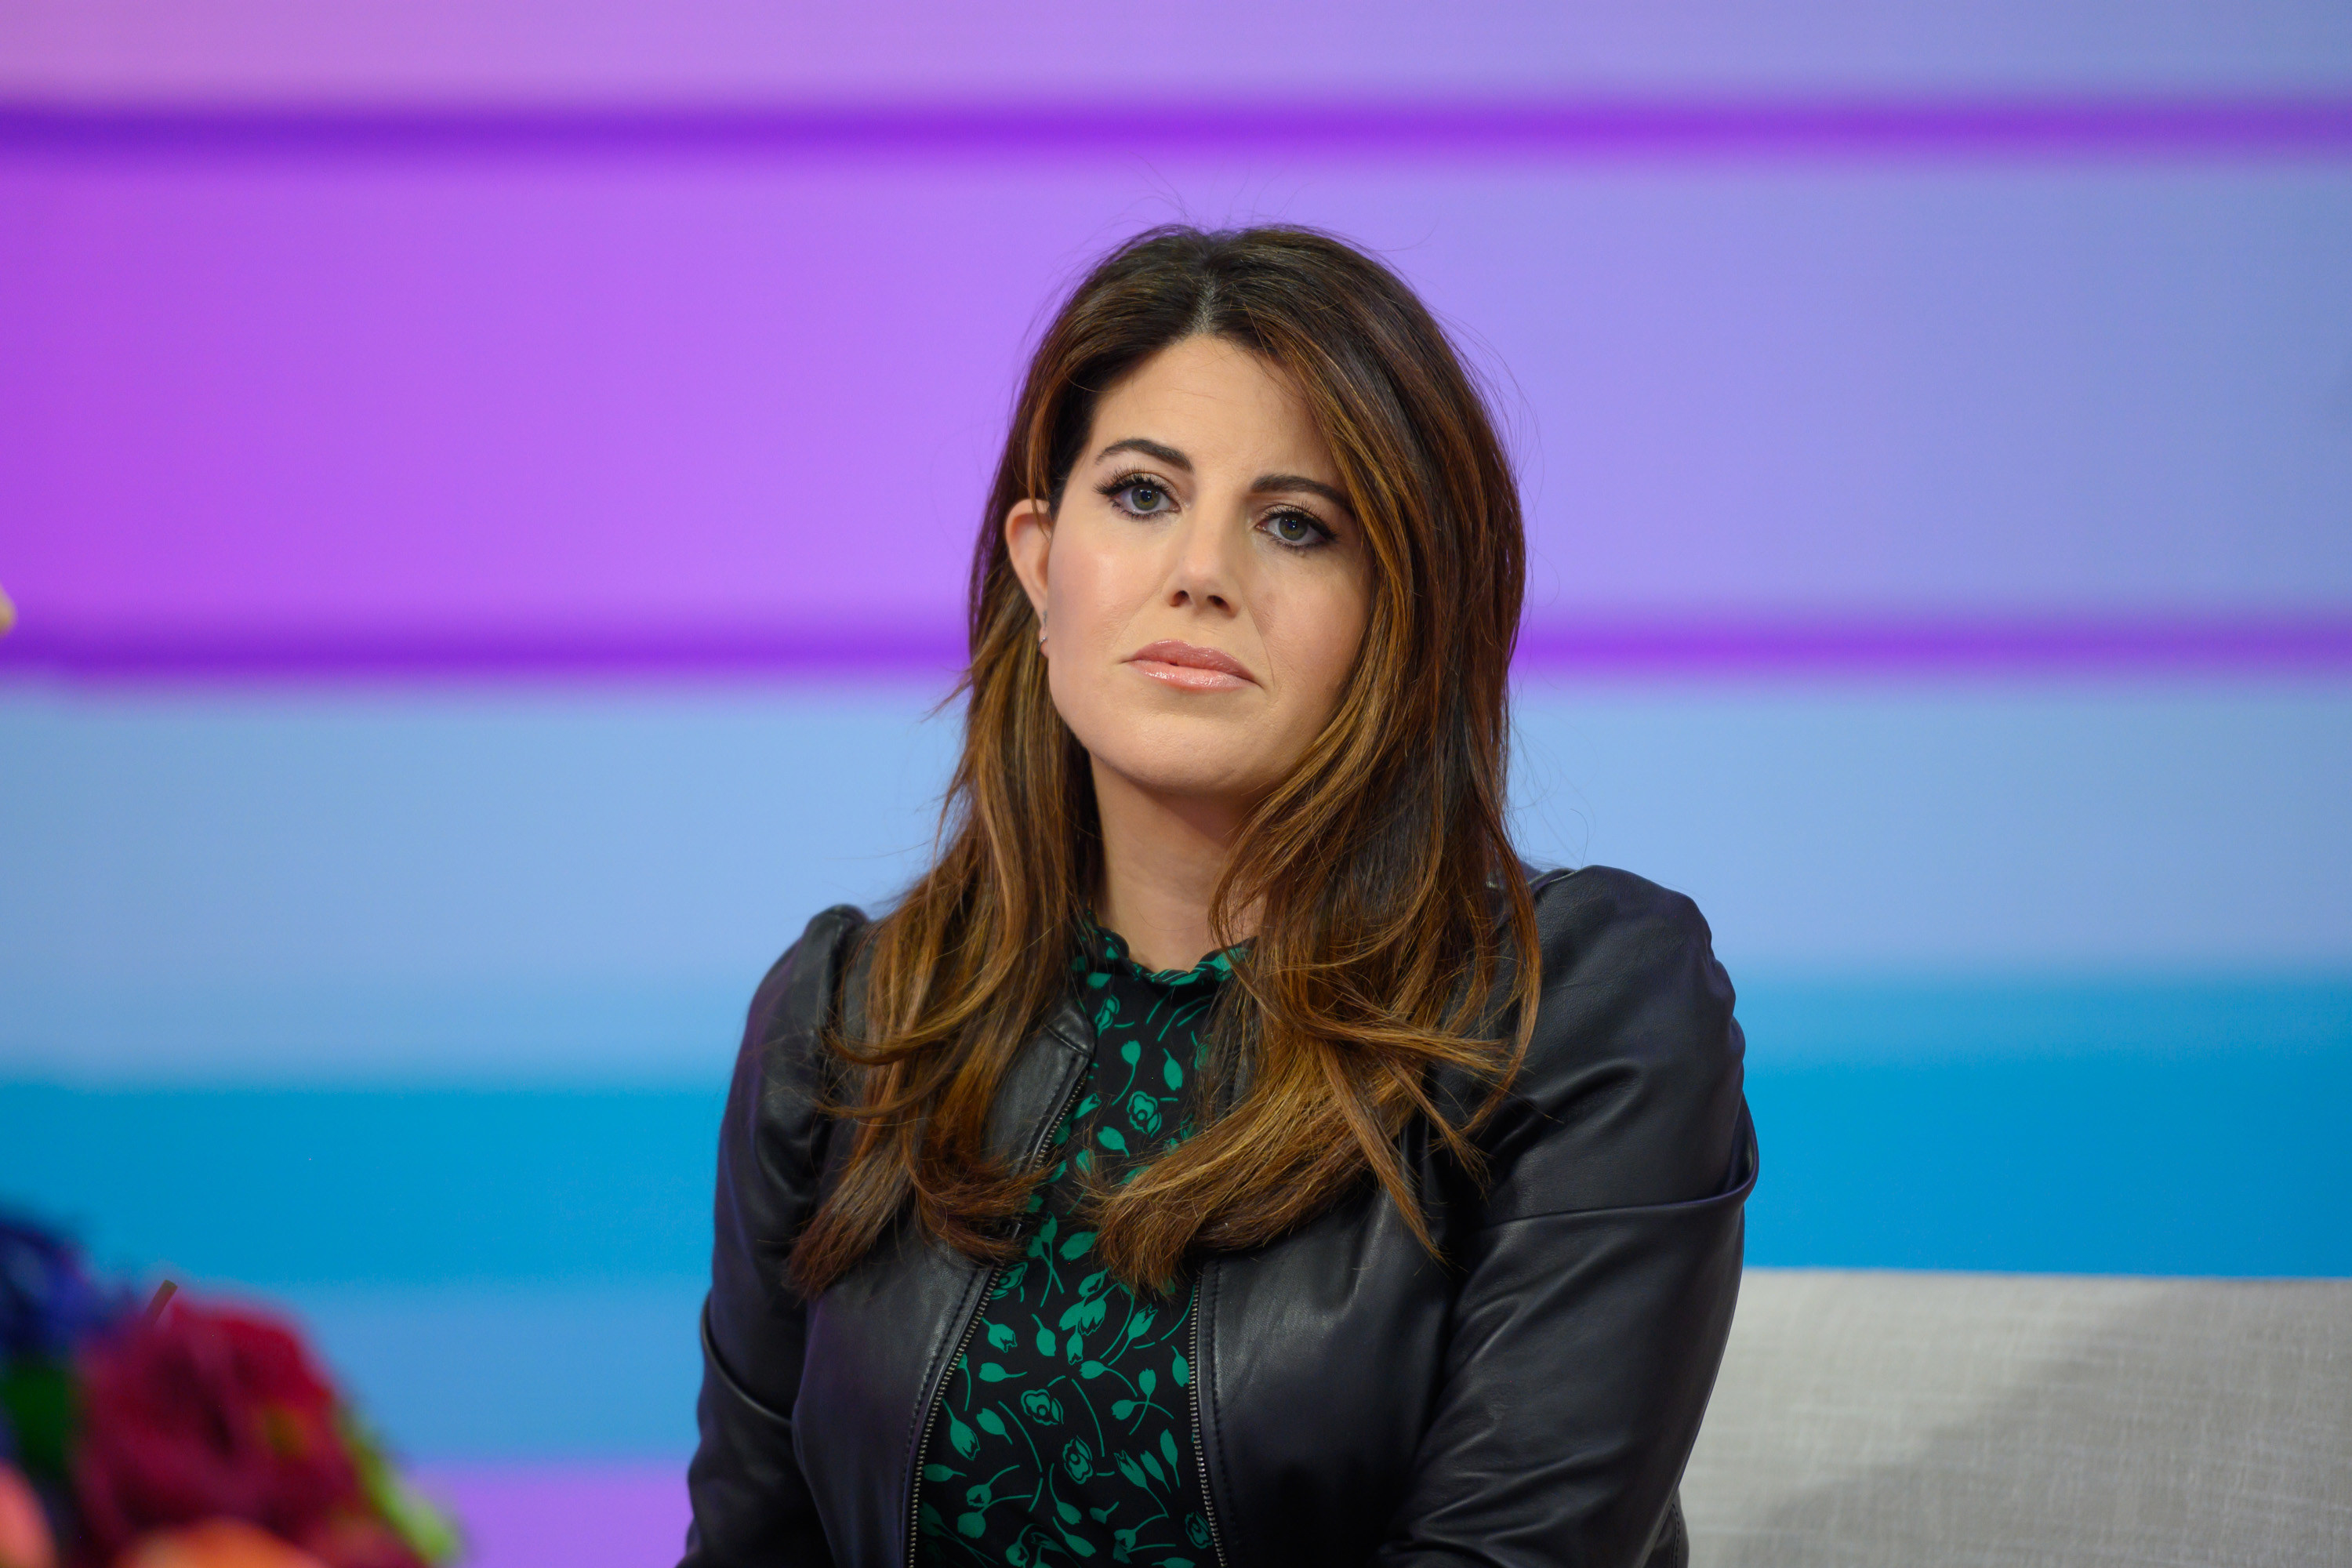 Lewinsky sits in a chair and looks in the distance